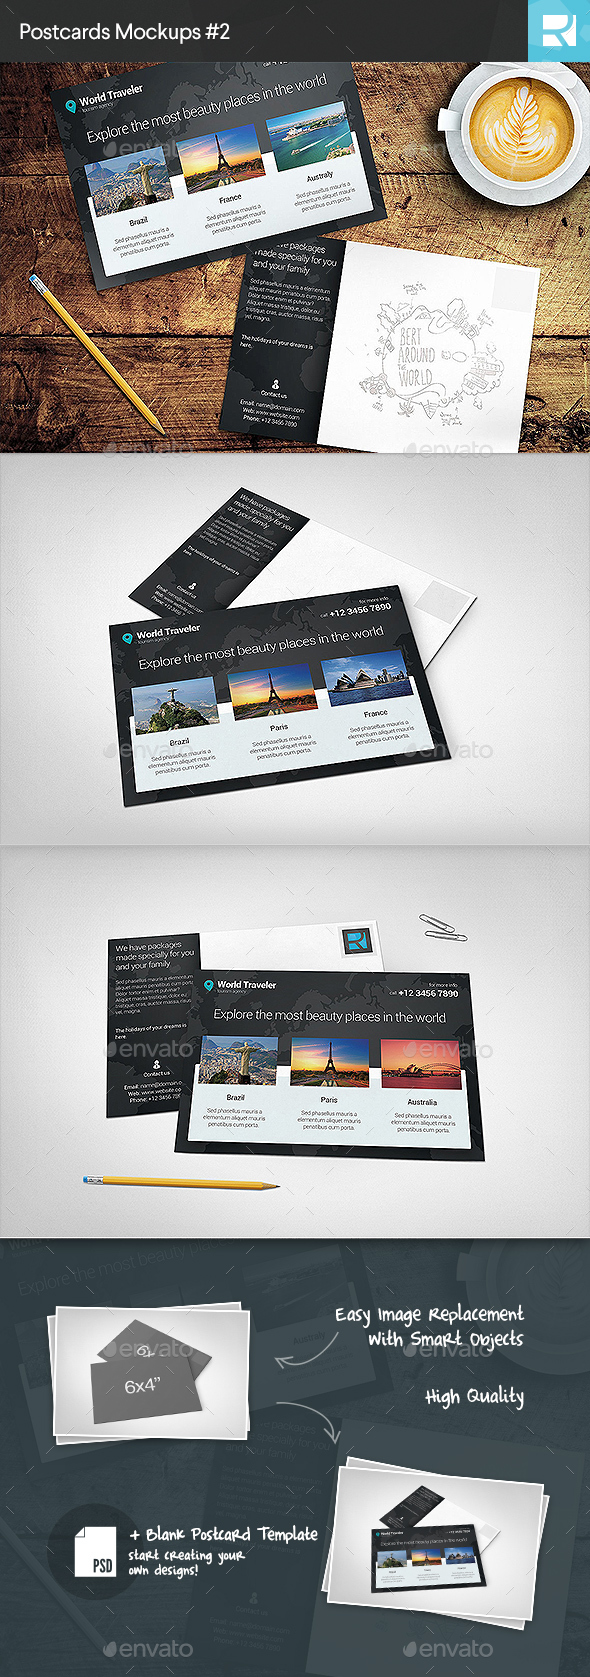 Postcard Mockups #2 (Stationery)